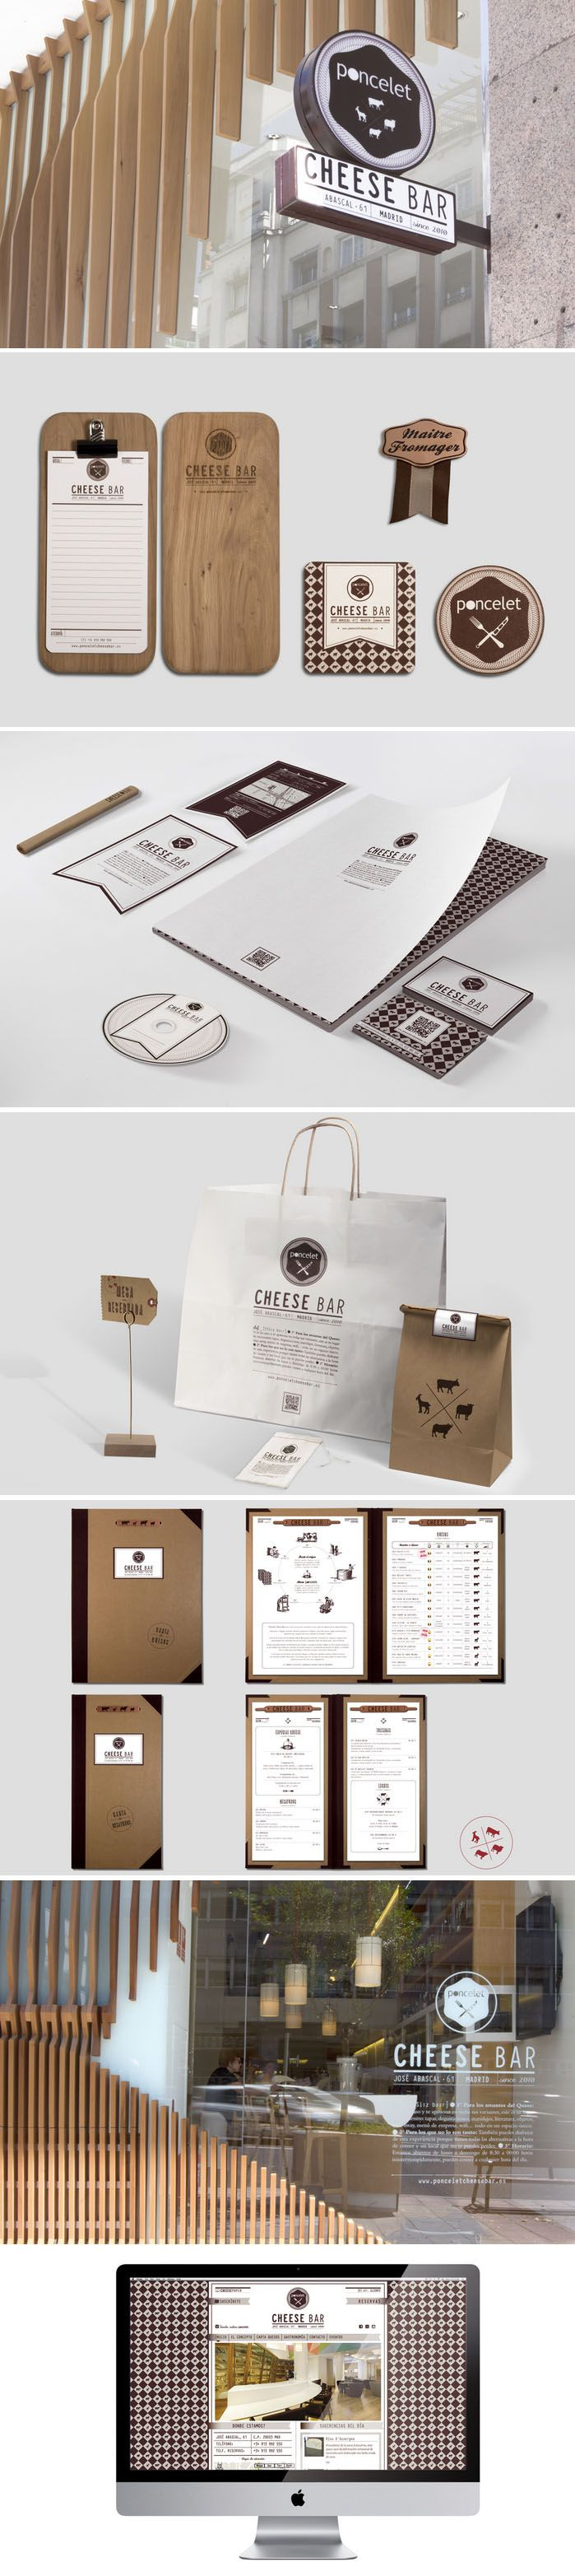 Poncelet Cheese Bar Branding | #stationary #corporate #design #corporatedesign #identity #branding #marketing < repinned by www.BlickeDeeler.de | Take a look at www.LogoGestaltung-Hamburg.de